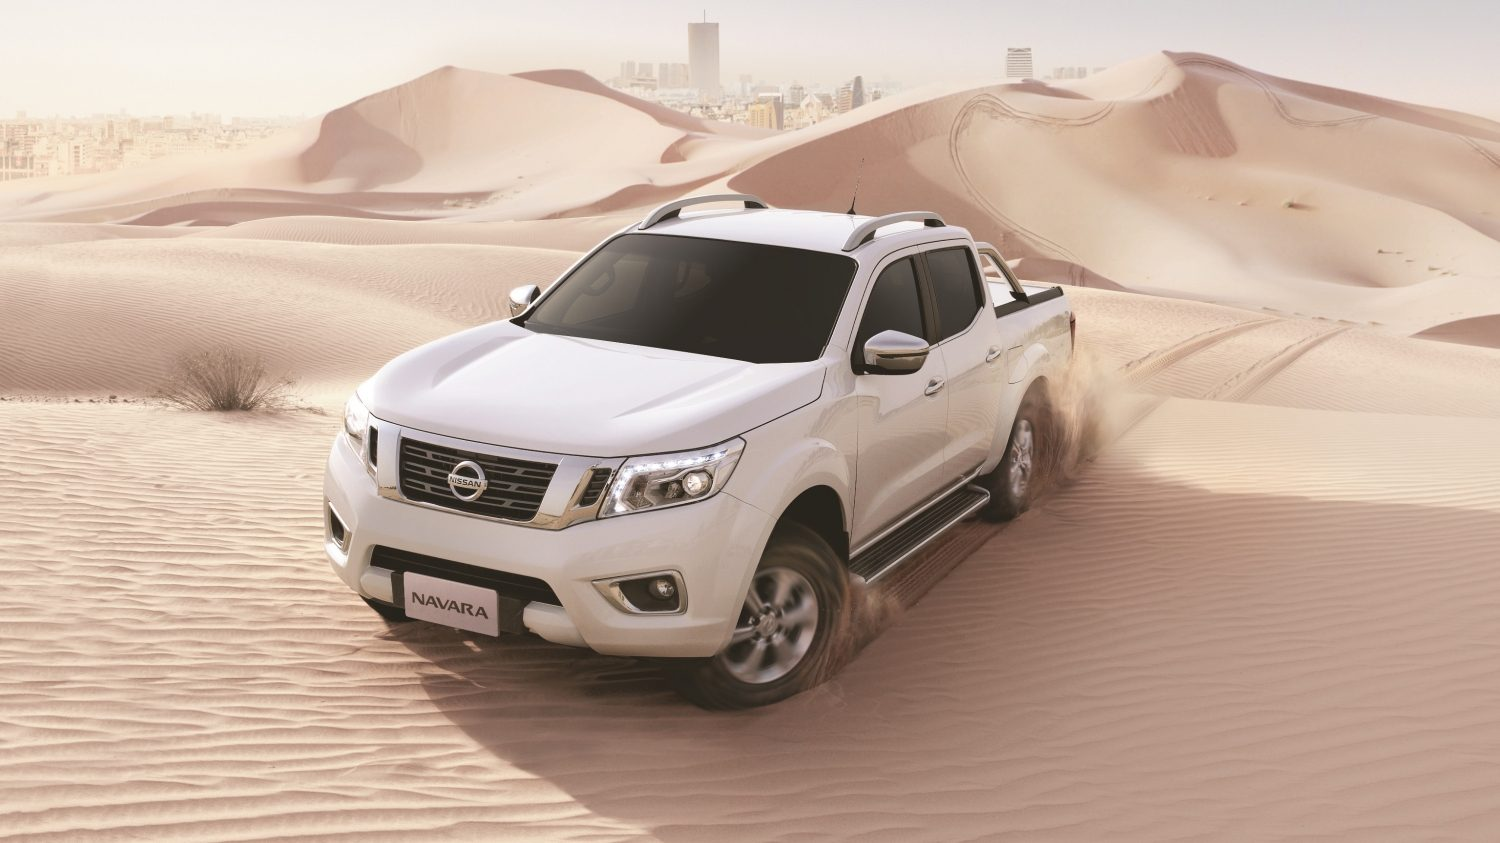 2019 Nissan NAVARA Pickup - Advanced Truck For Your Fleet